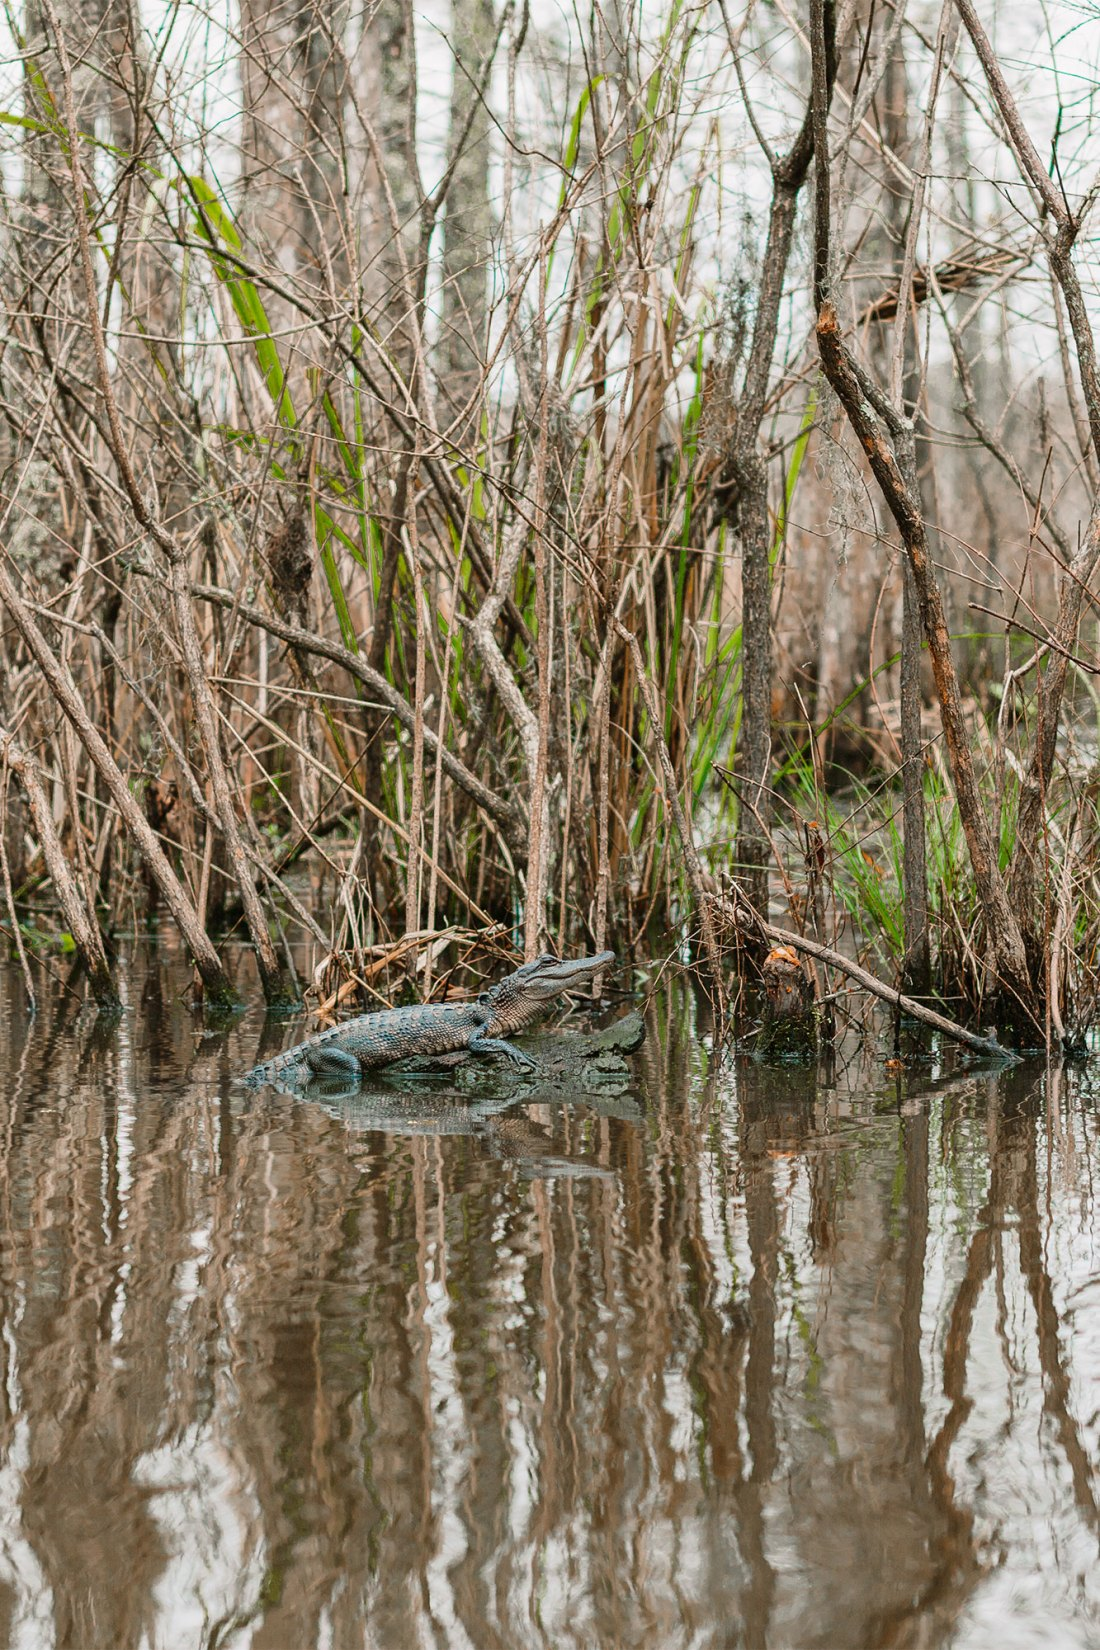 Alligator floating in the swamp in New Orleans